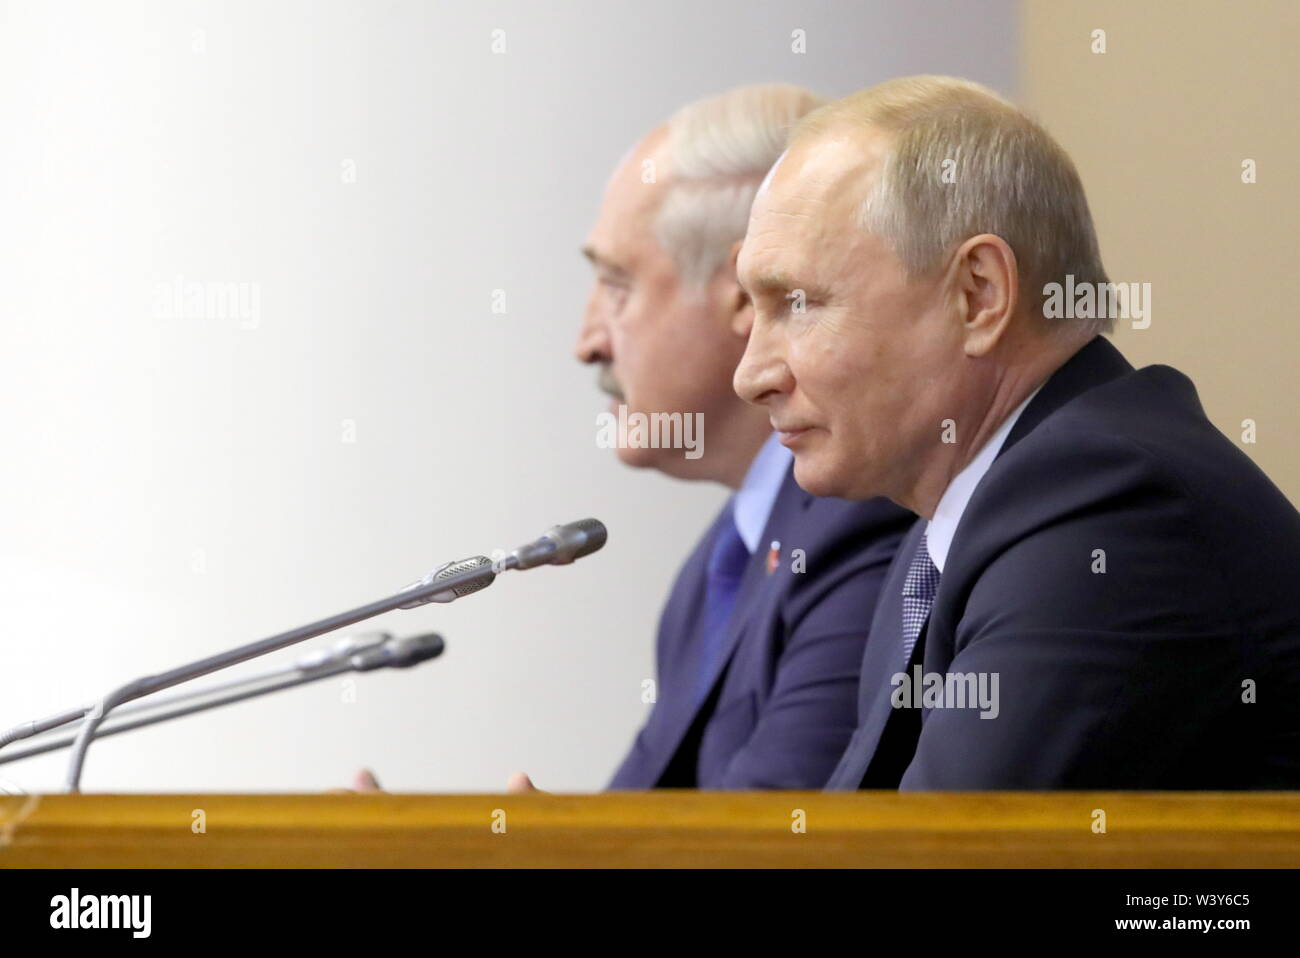 St Petersburg, Russia. 18th July, 2019. ST PETERSBURG, RUSSIA - JULY 18, 2019: Russia's President Vladimir Putin (front) and Belarus' President Alexander Lukashenko attend a plenary meeting at the 5th Belarus-Russia Forum of Regions, Tauride Palace. Mikhail Klimentyev/Russian Presidential Press and Information Office/TASS Credit: ITAR-TASS News Agency/Alamy Live News - Stock Image